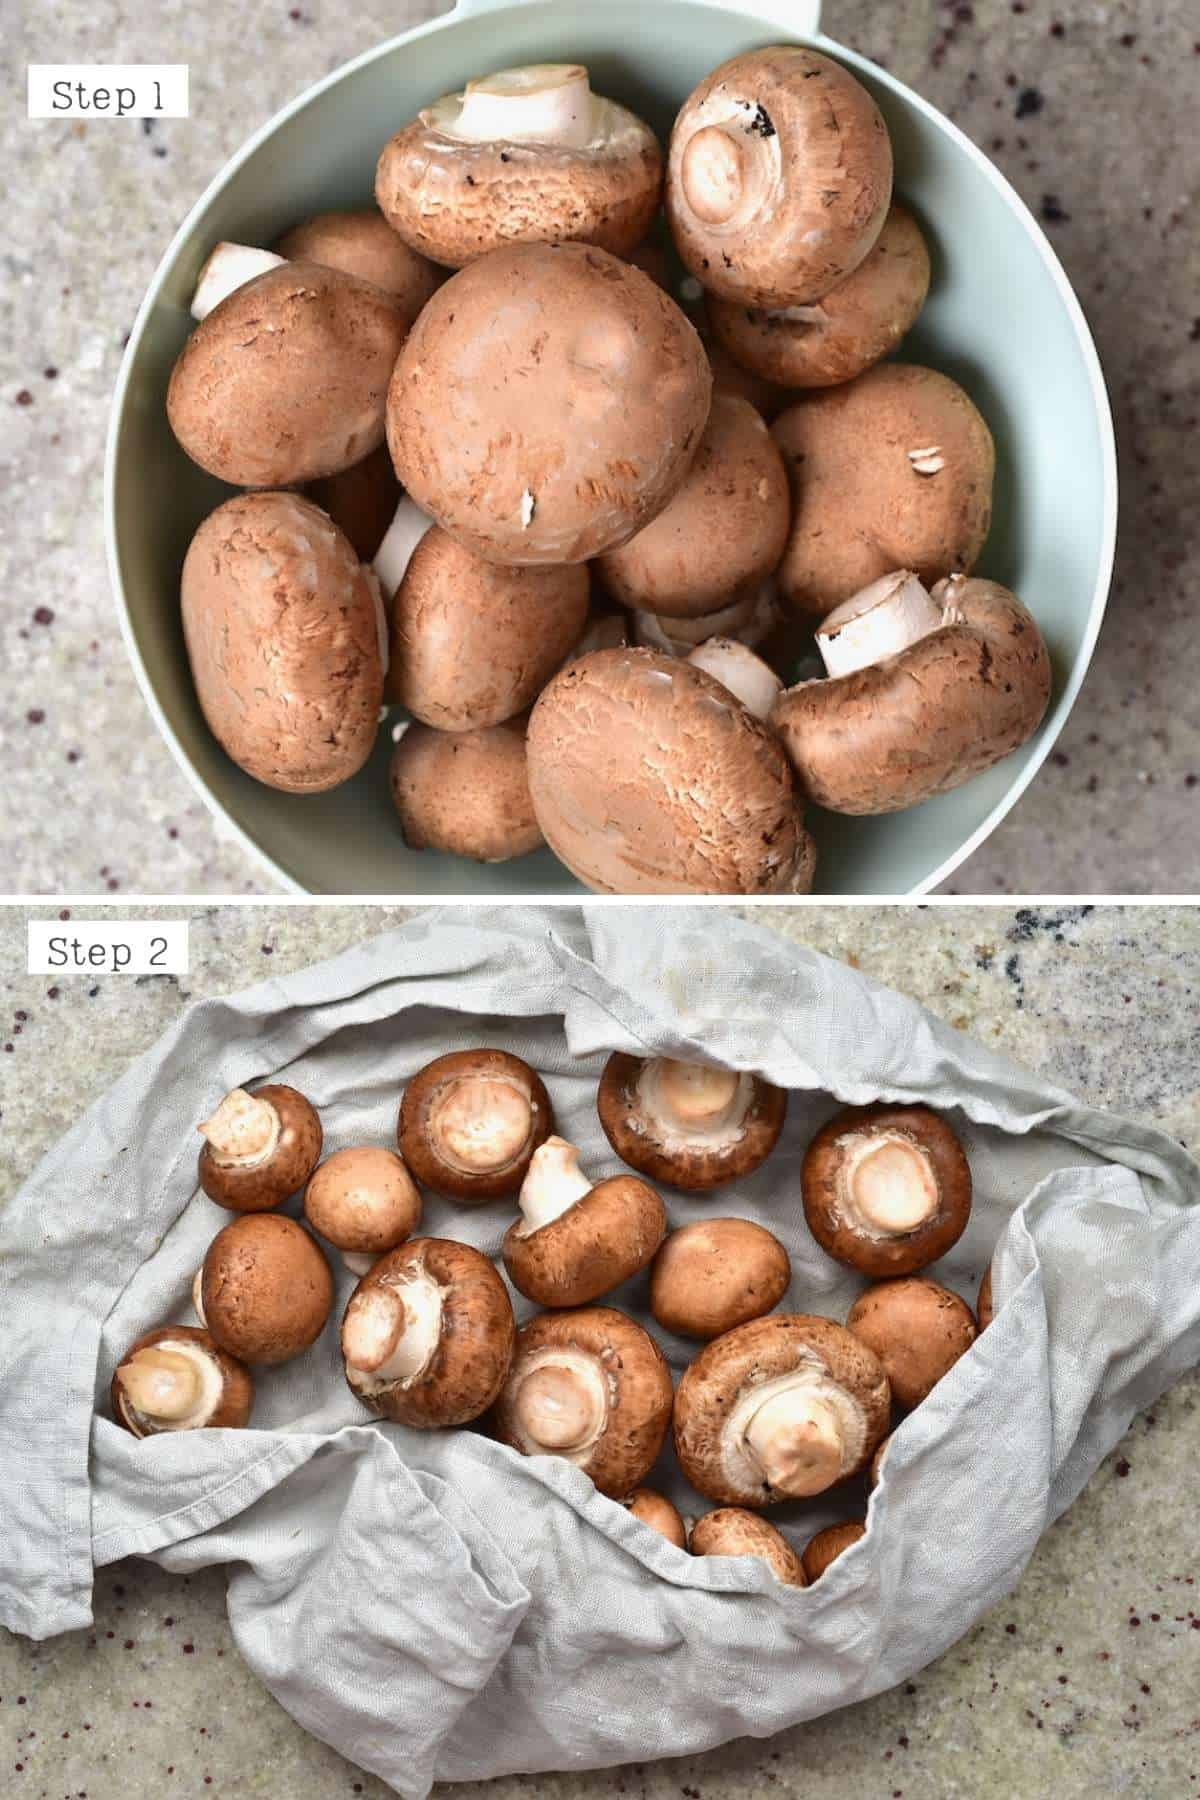 Steps for cleaning mushrooms